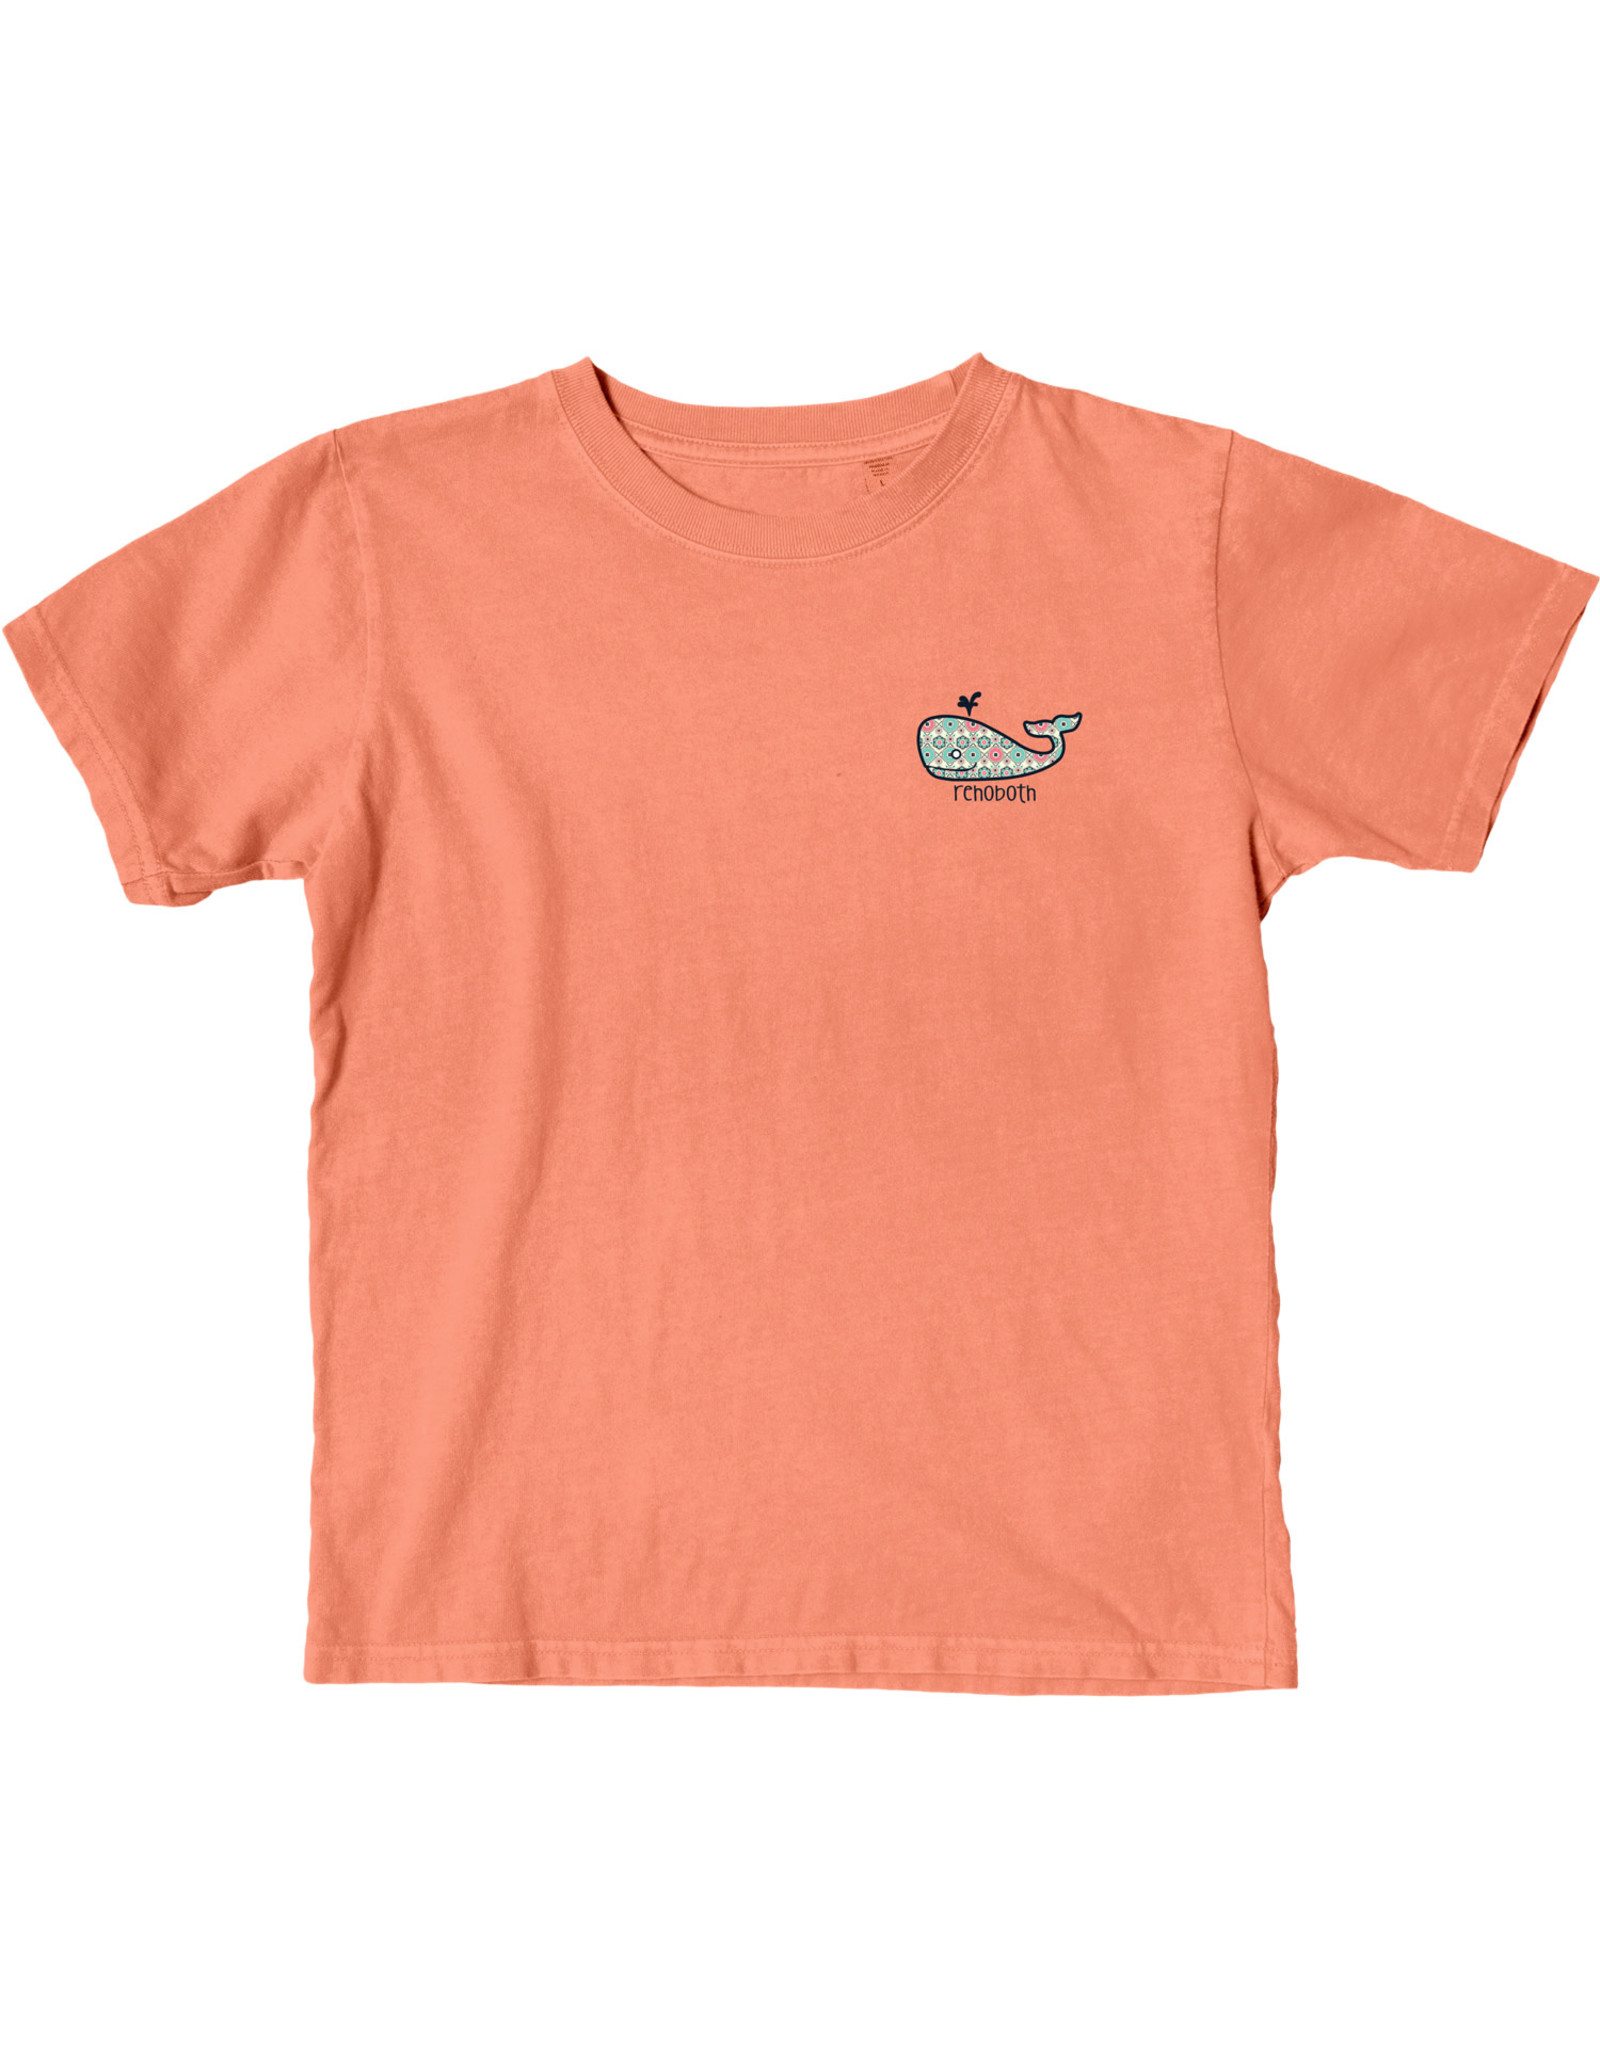 BLUE 84 WISH LIST WHALE YOUTH SS TEE